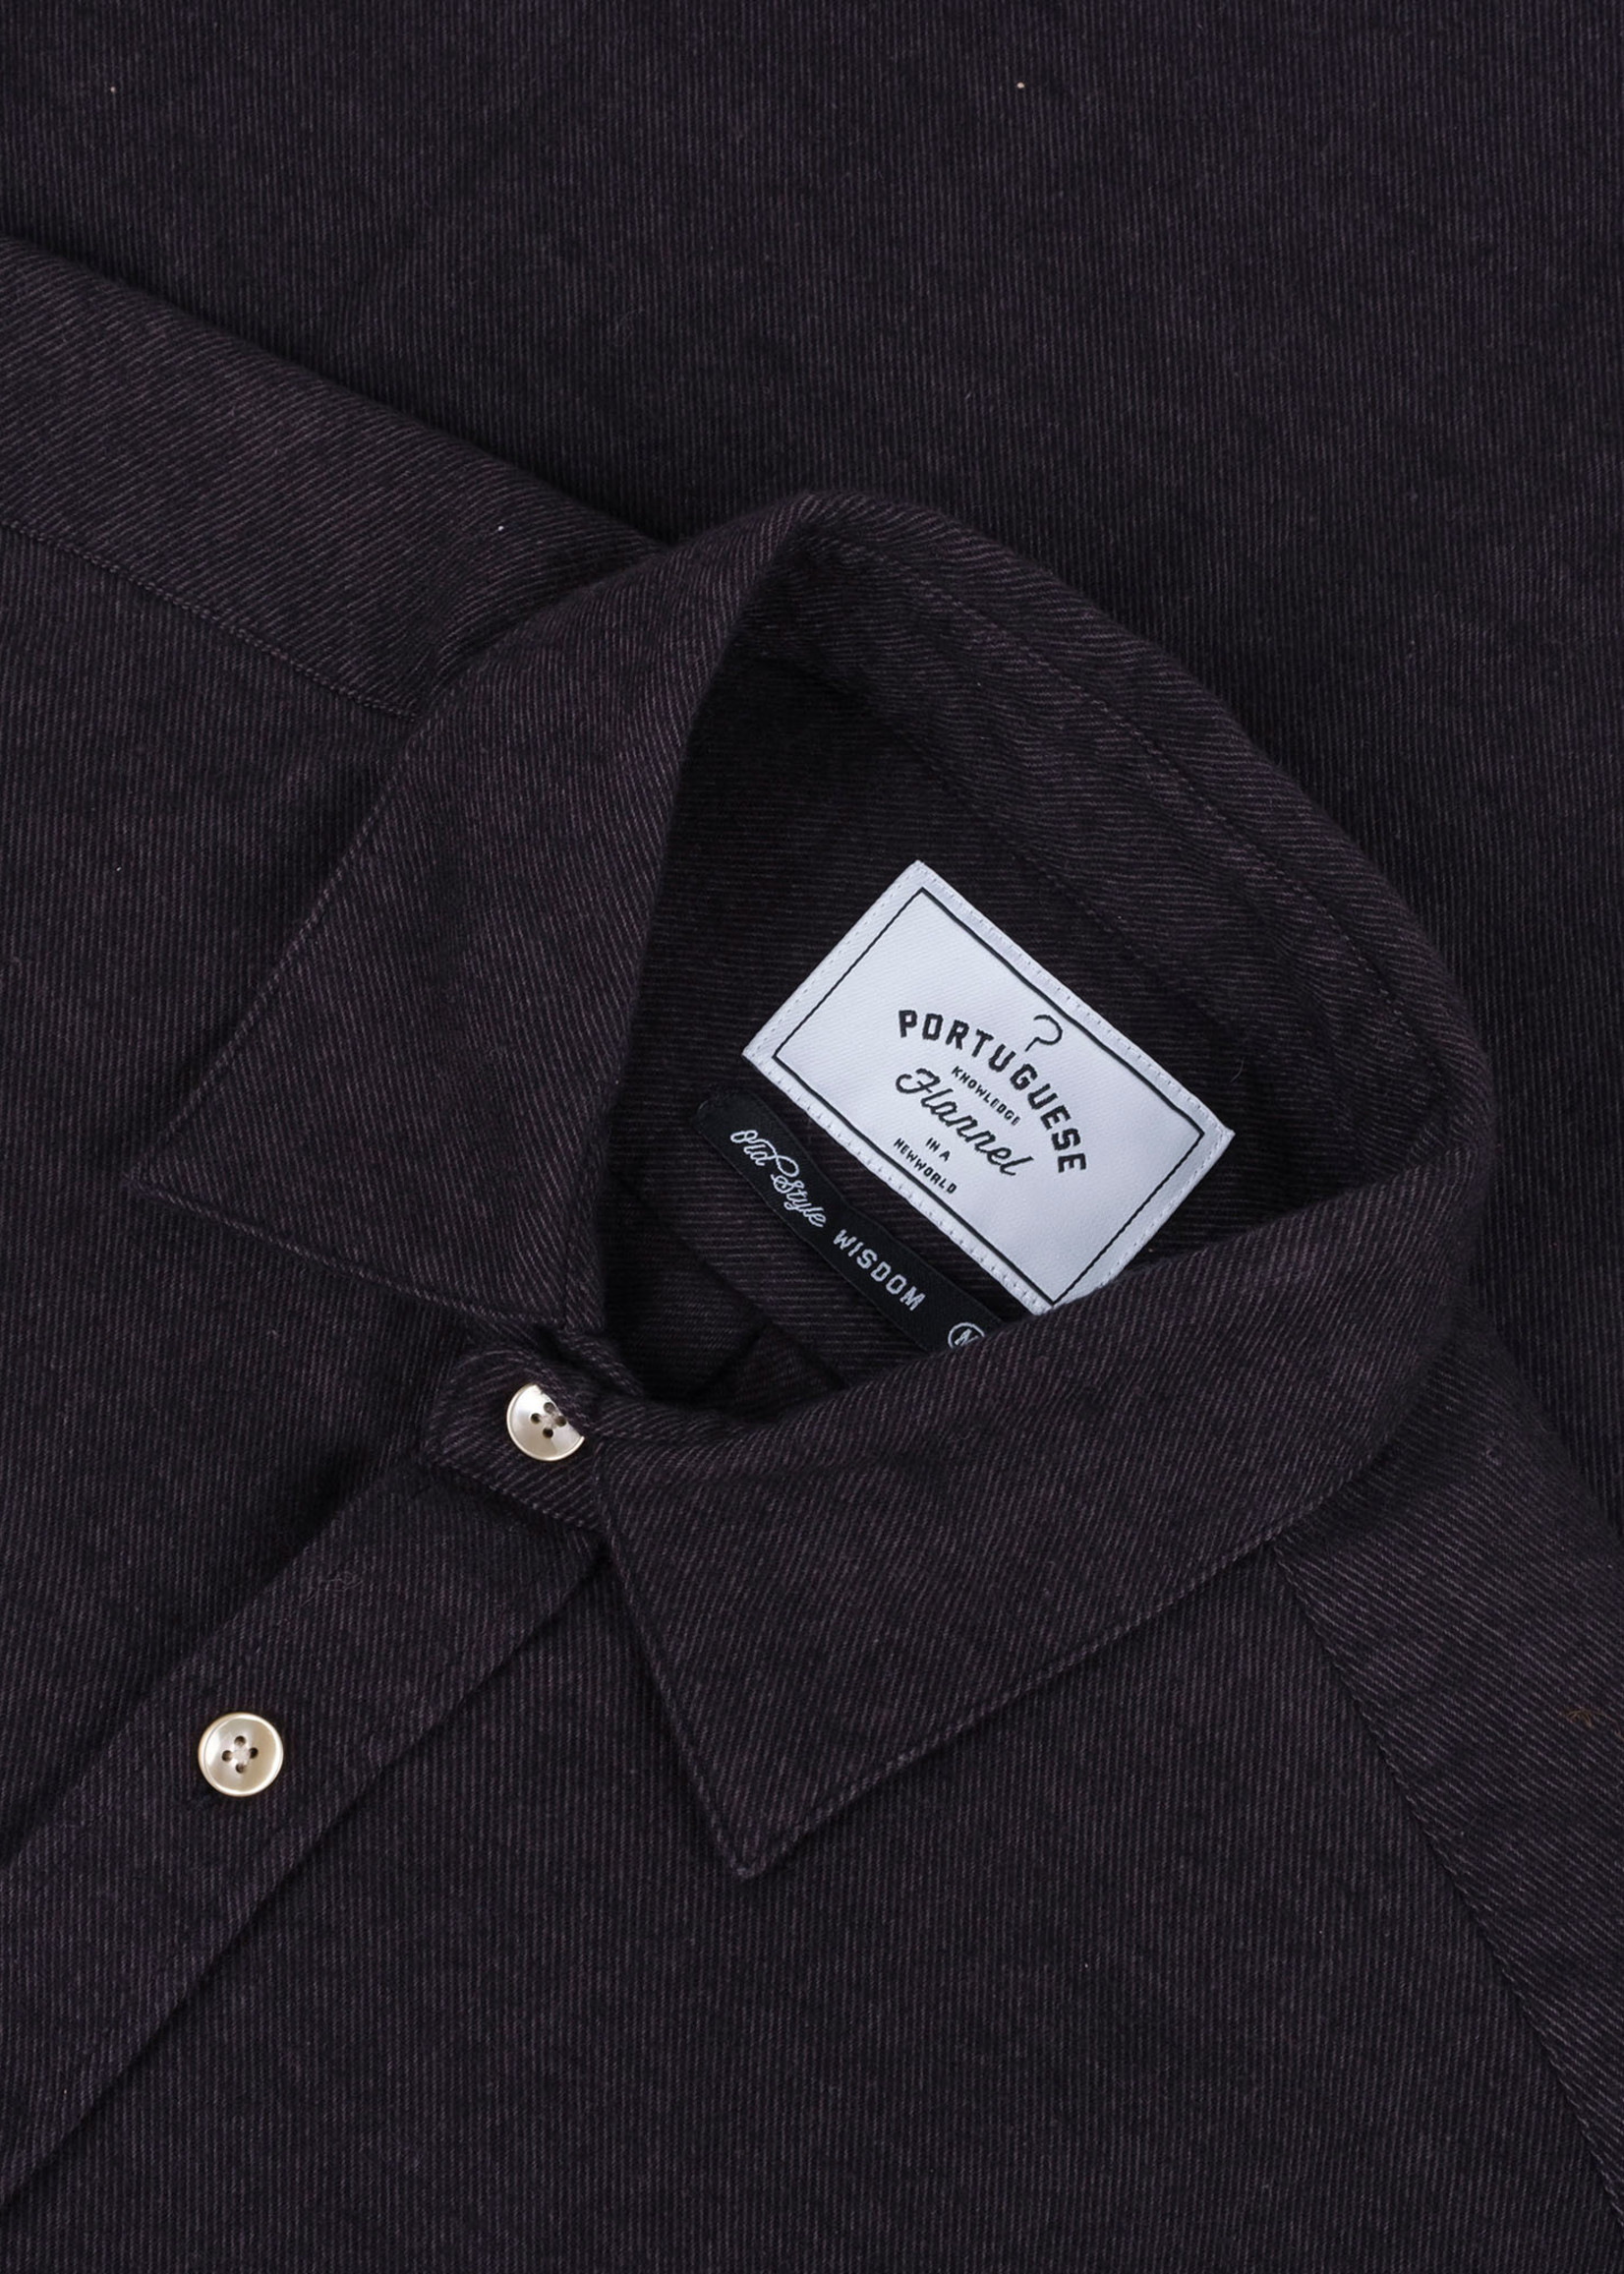 Portuguese Flannel Teca Graphite Cotton Flannel Sport Shirt by Portuguese Flannel